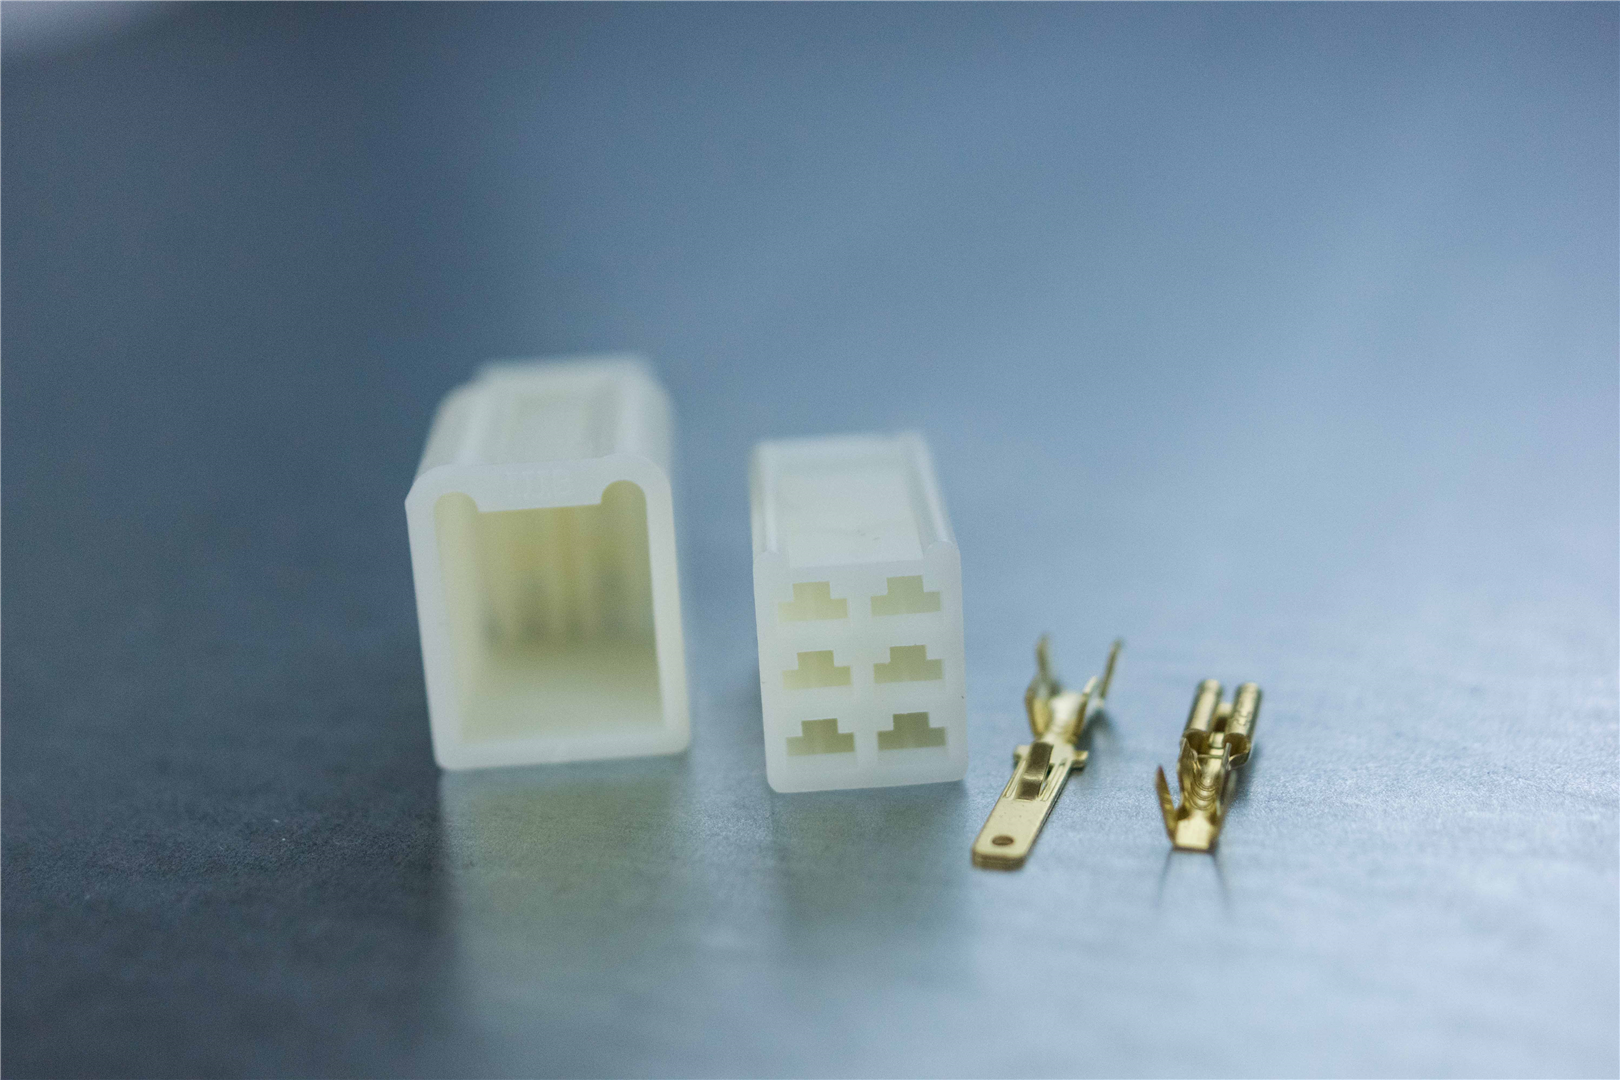 2.8mm 6-pin Non-Latching M/F ABS Connector